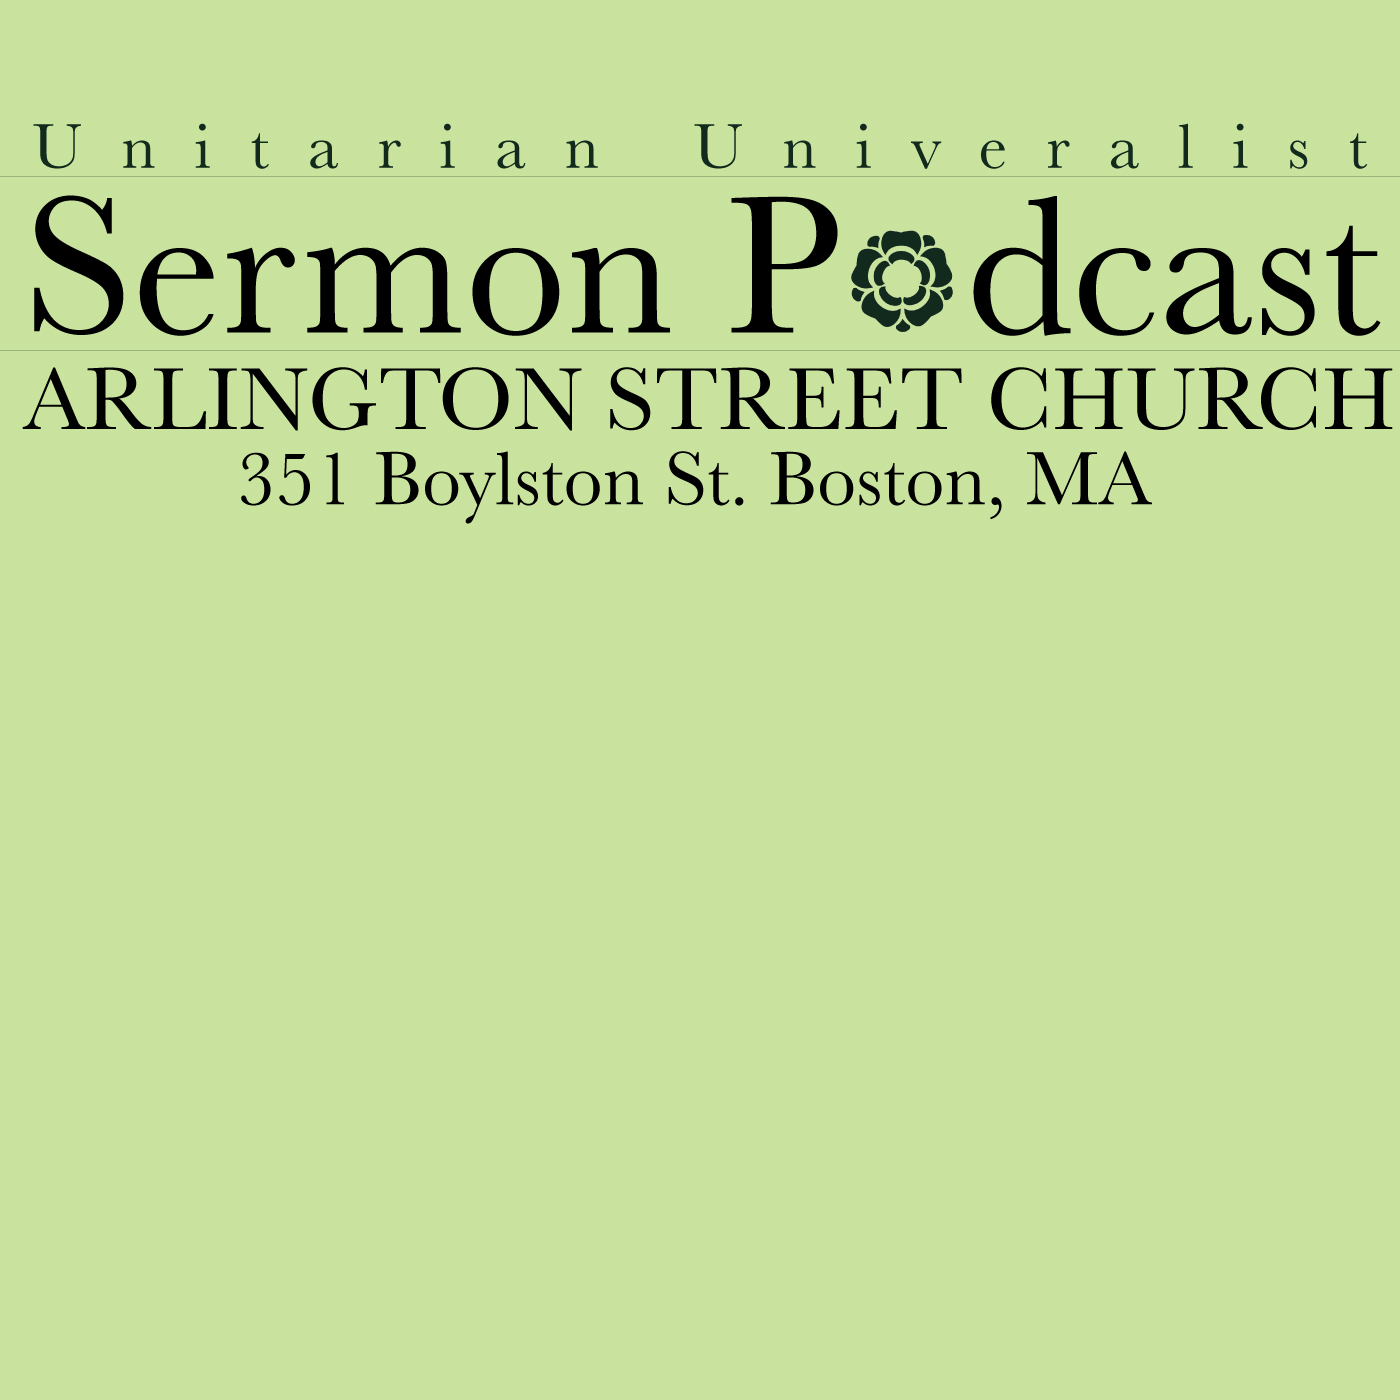 ASC Sermon Podcast